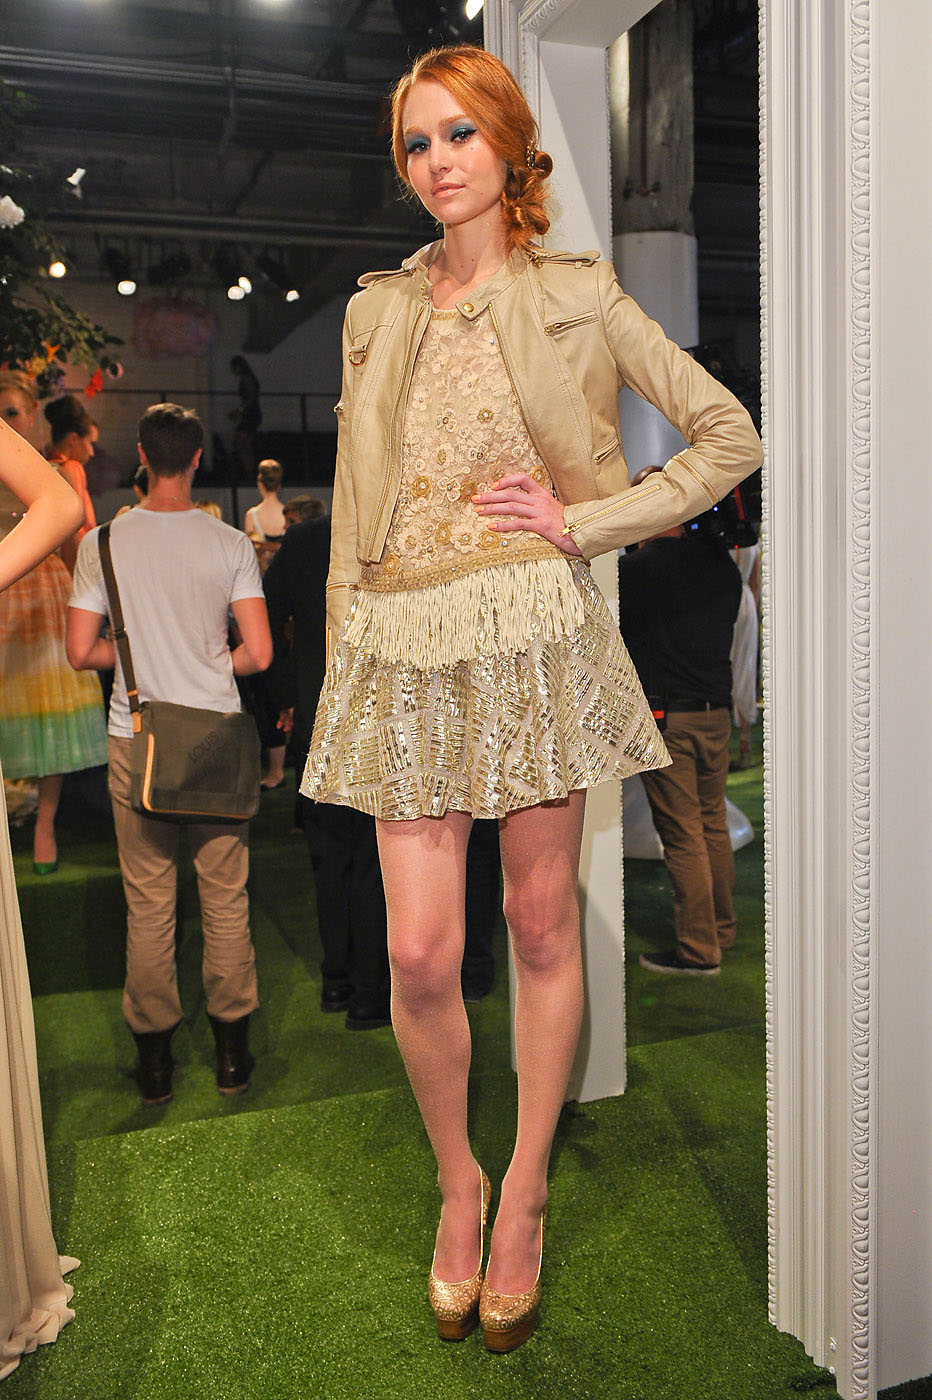 Alice And Olivia Nova York Vero 2012 RTW Desfiles